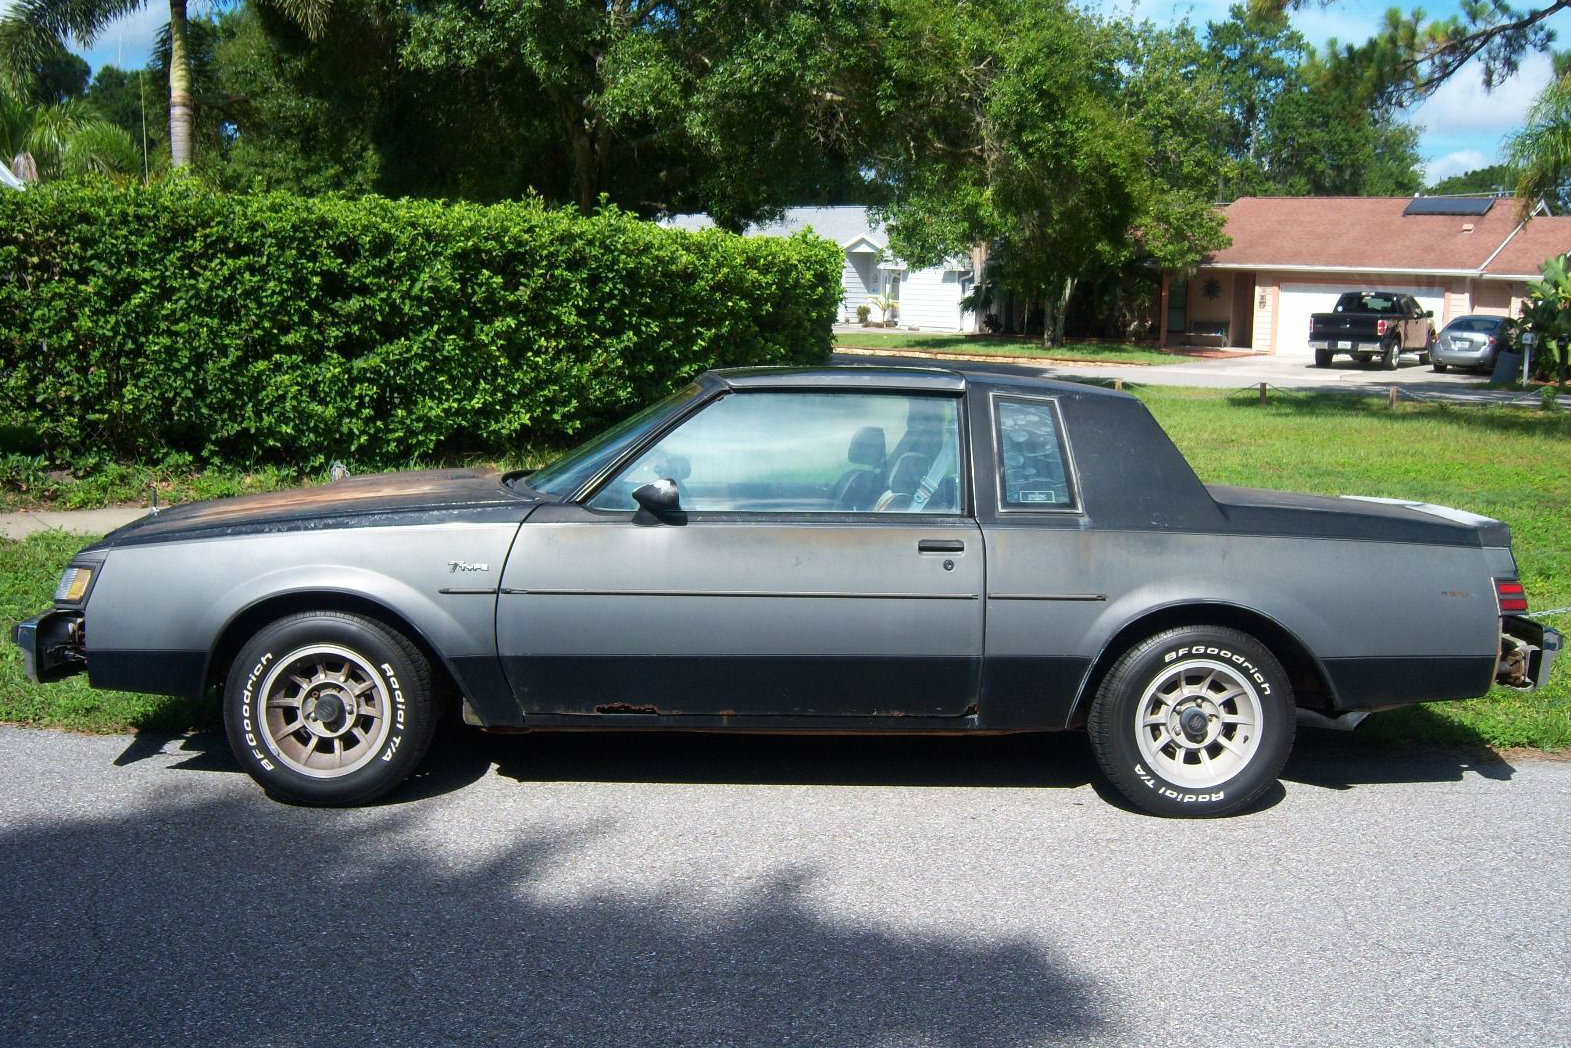 Buick T-Type/Grand National Hybrid!